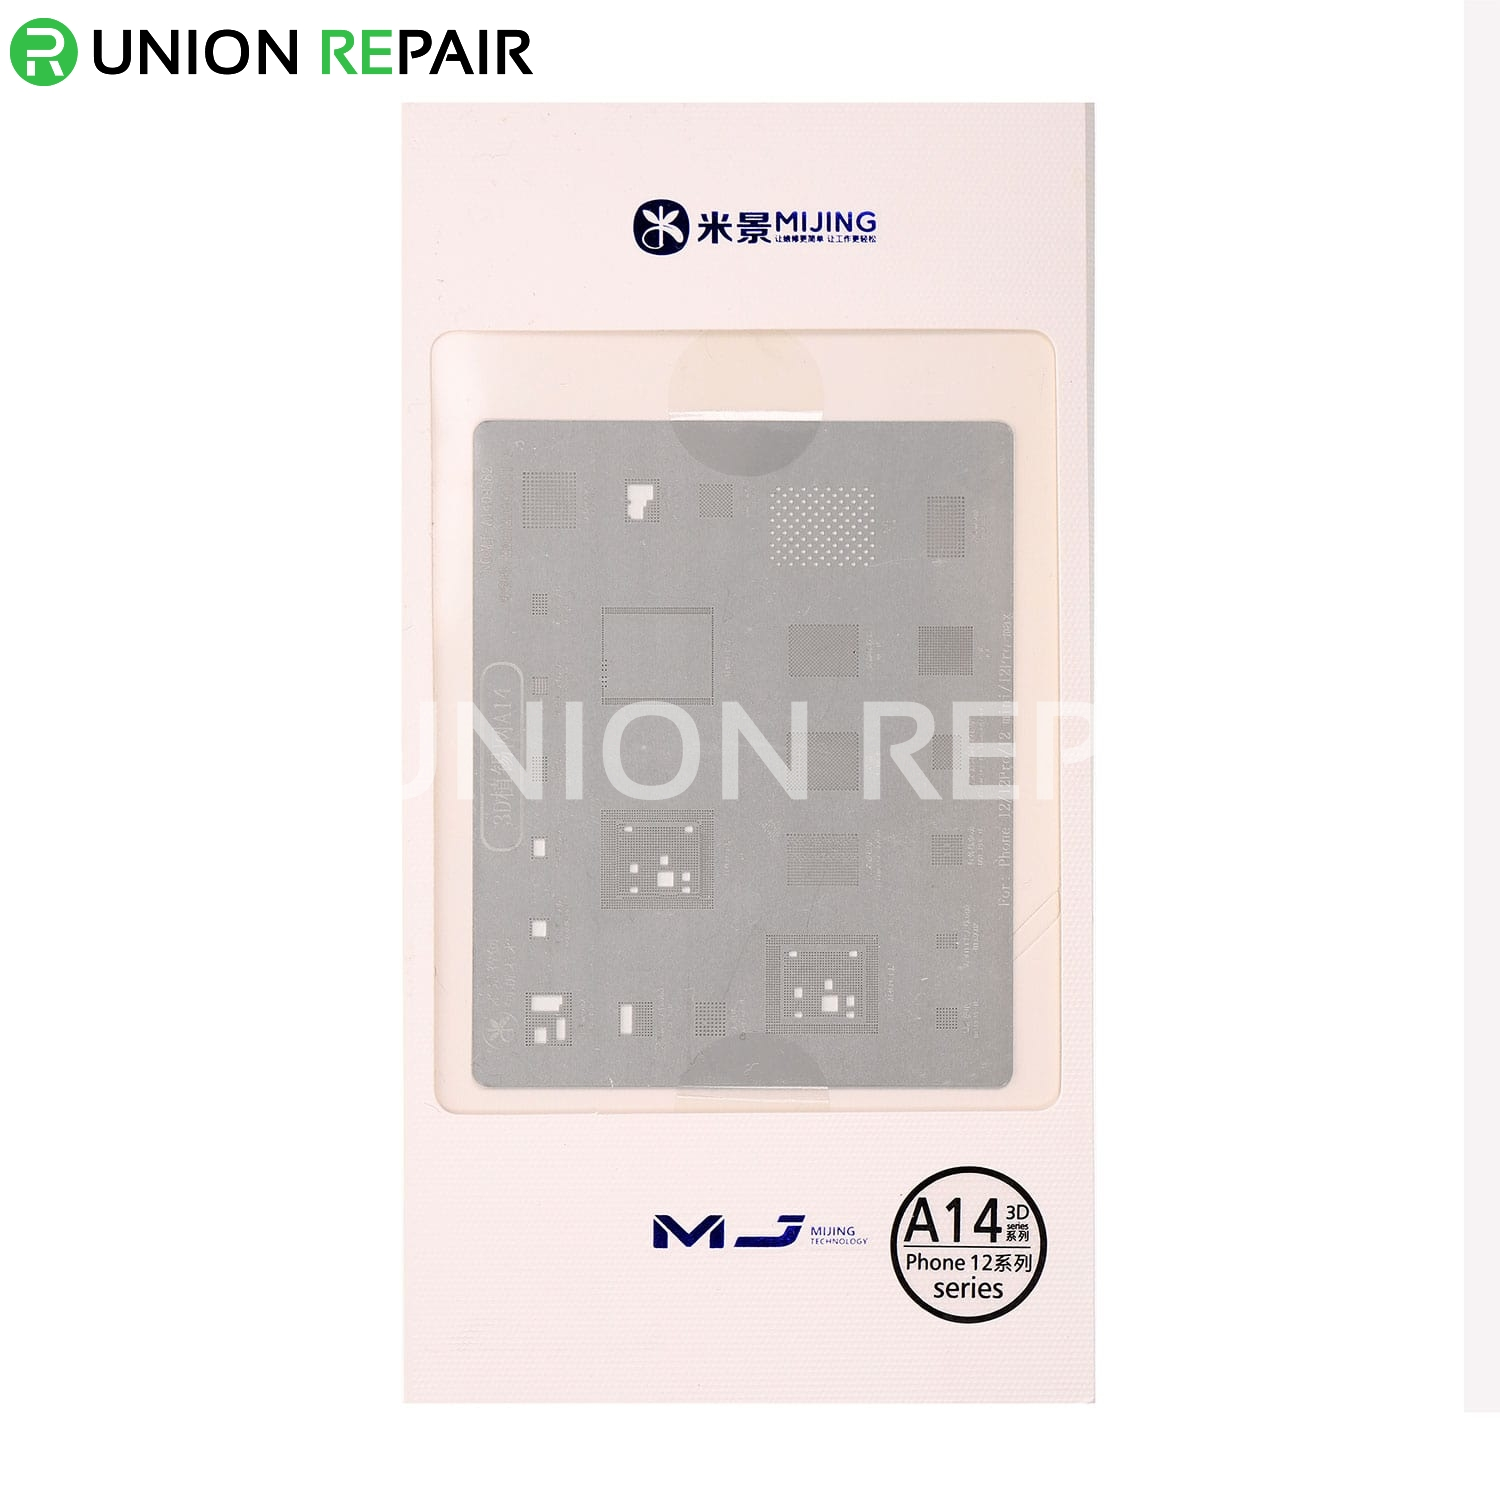 MiJing 3D BGA Reball Stencil for iPhone A8/A9/A10/A11/A12/A13/A14, Type: For A14 iPhone 12 Series